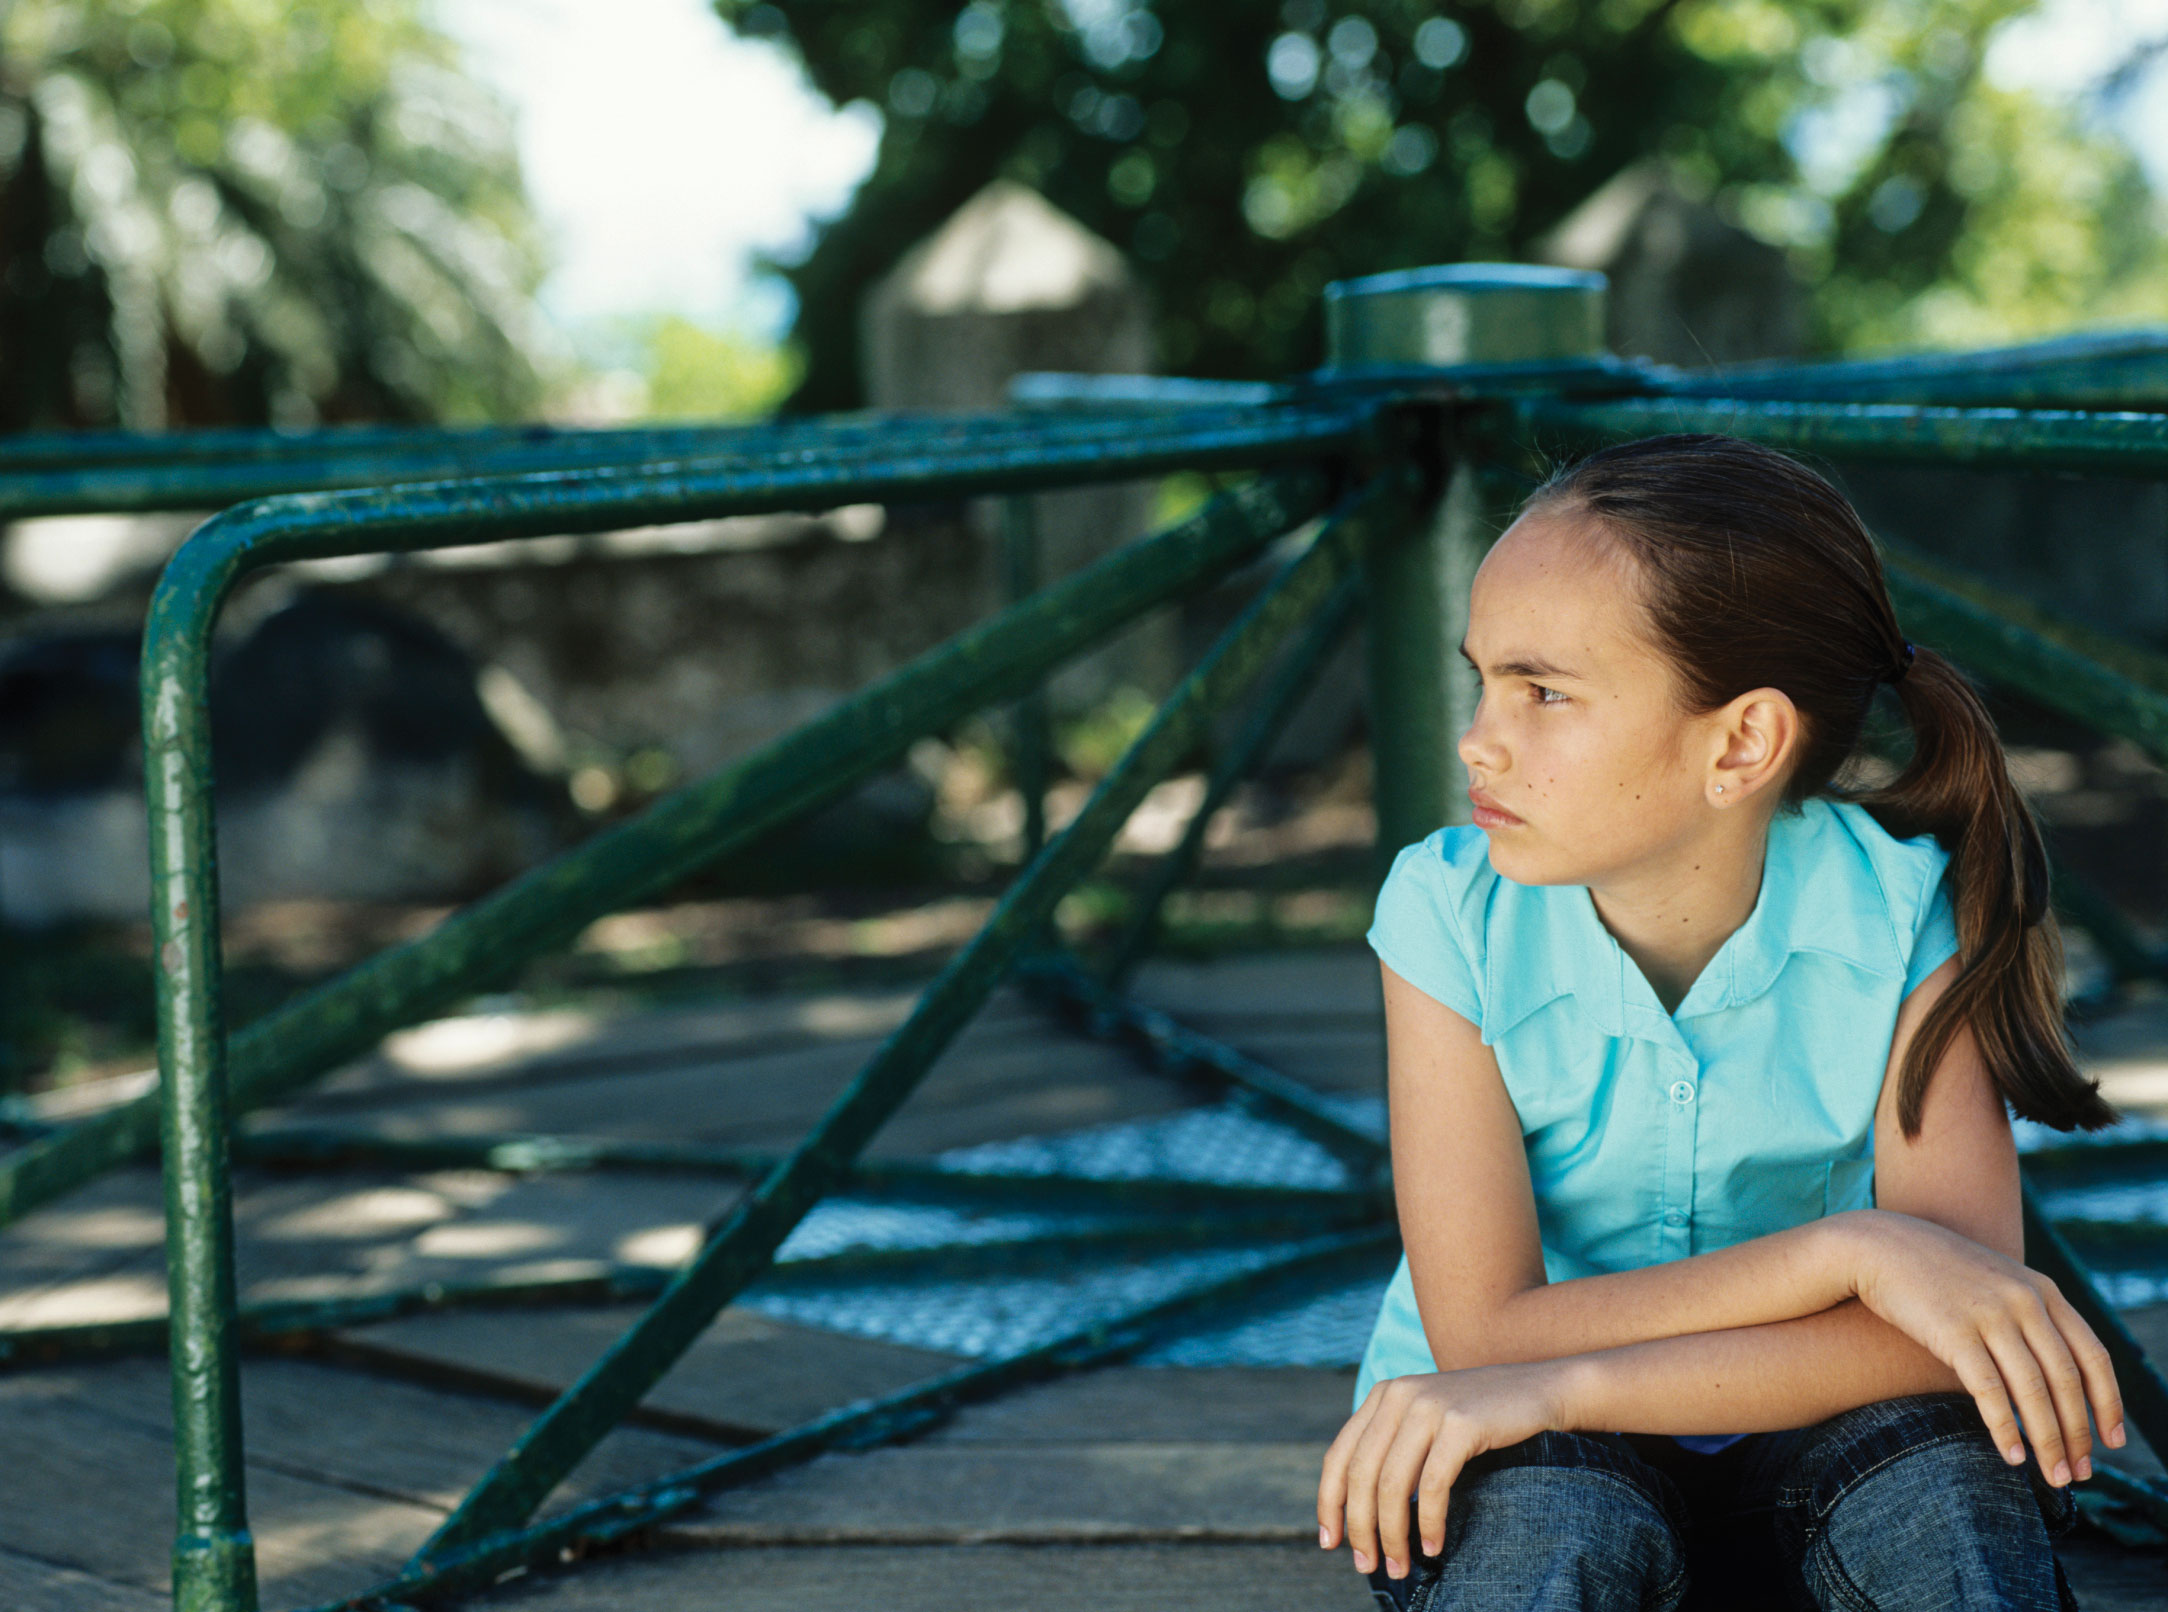 Do all child psychologists have to do research and studies?